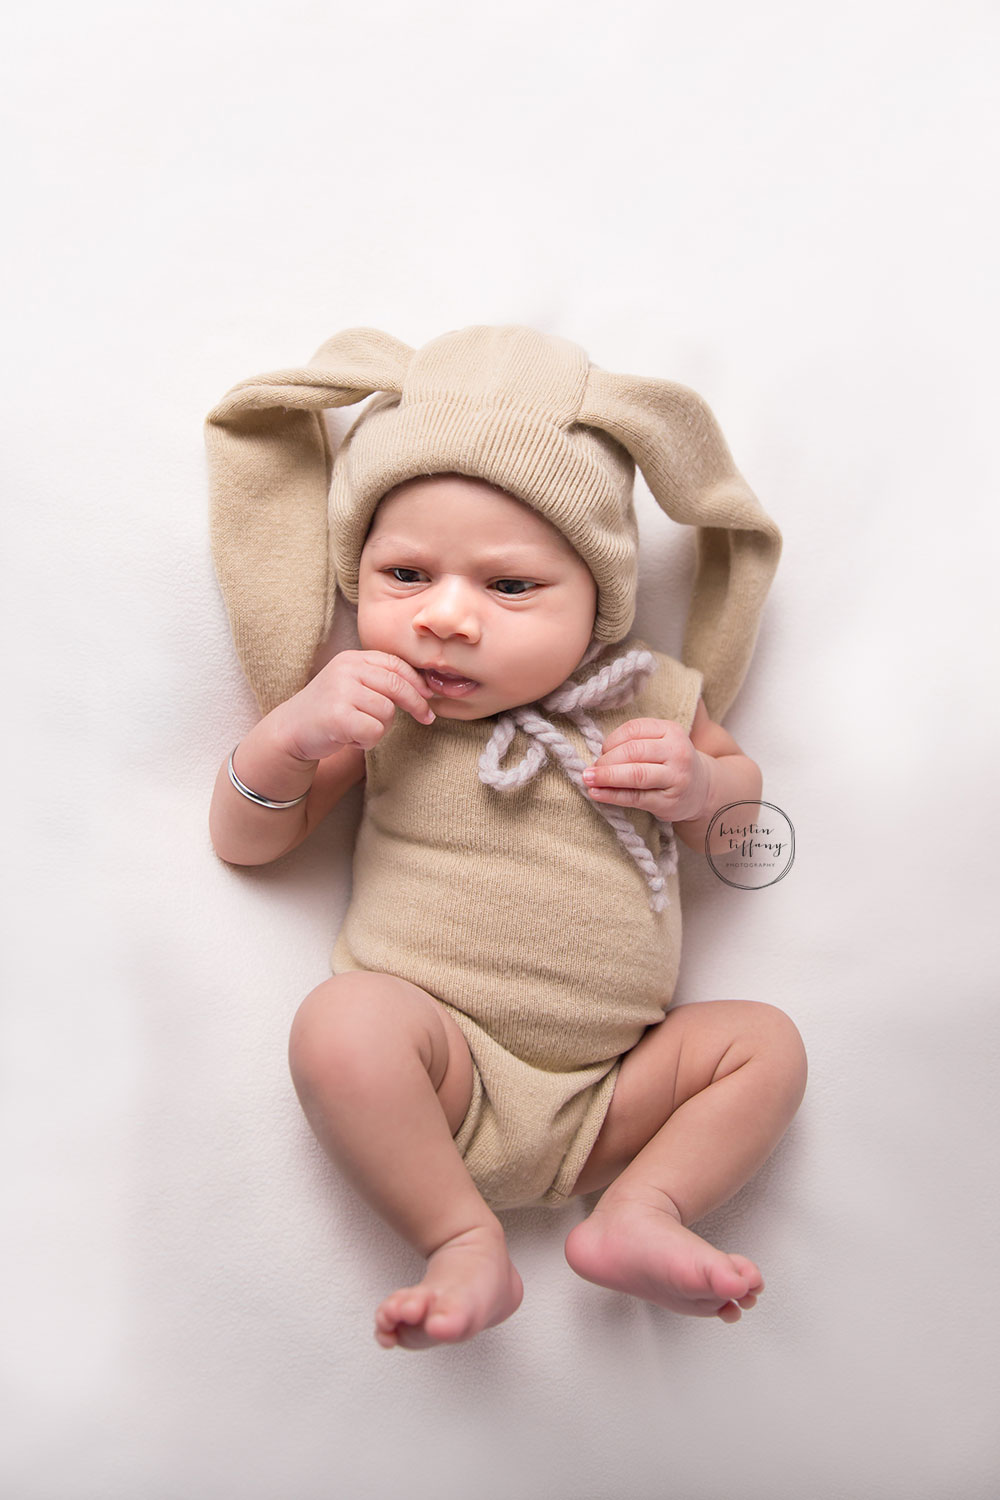 a photo of a baby wearing a bunny outfit